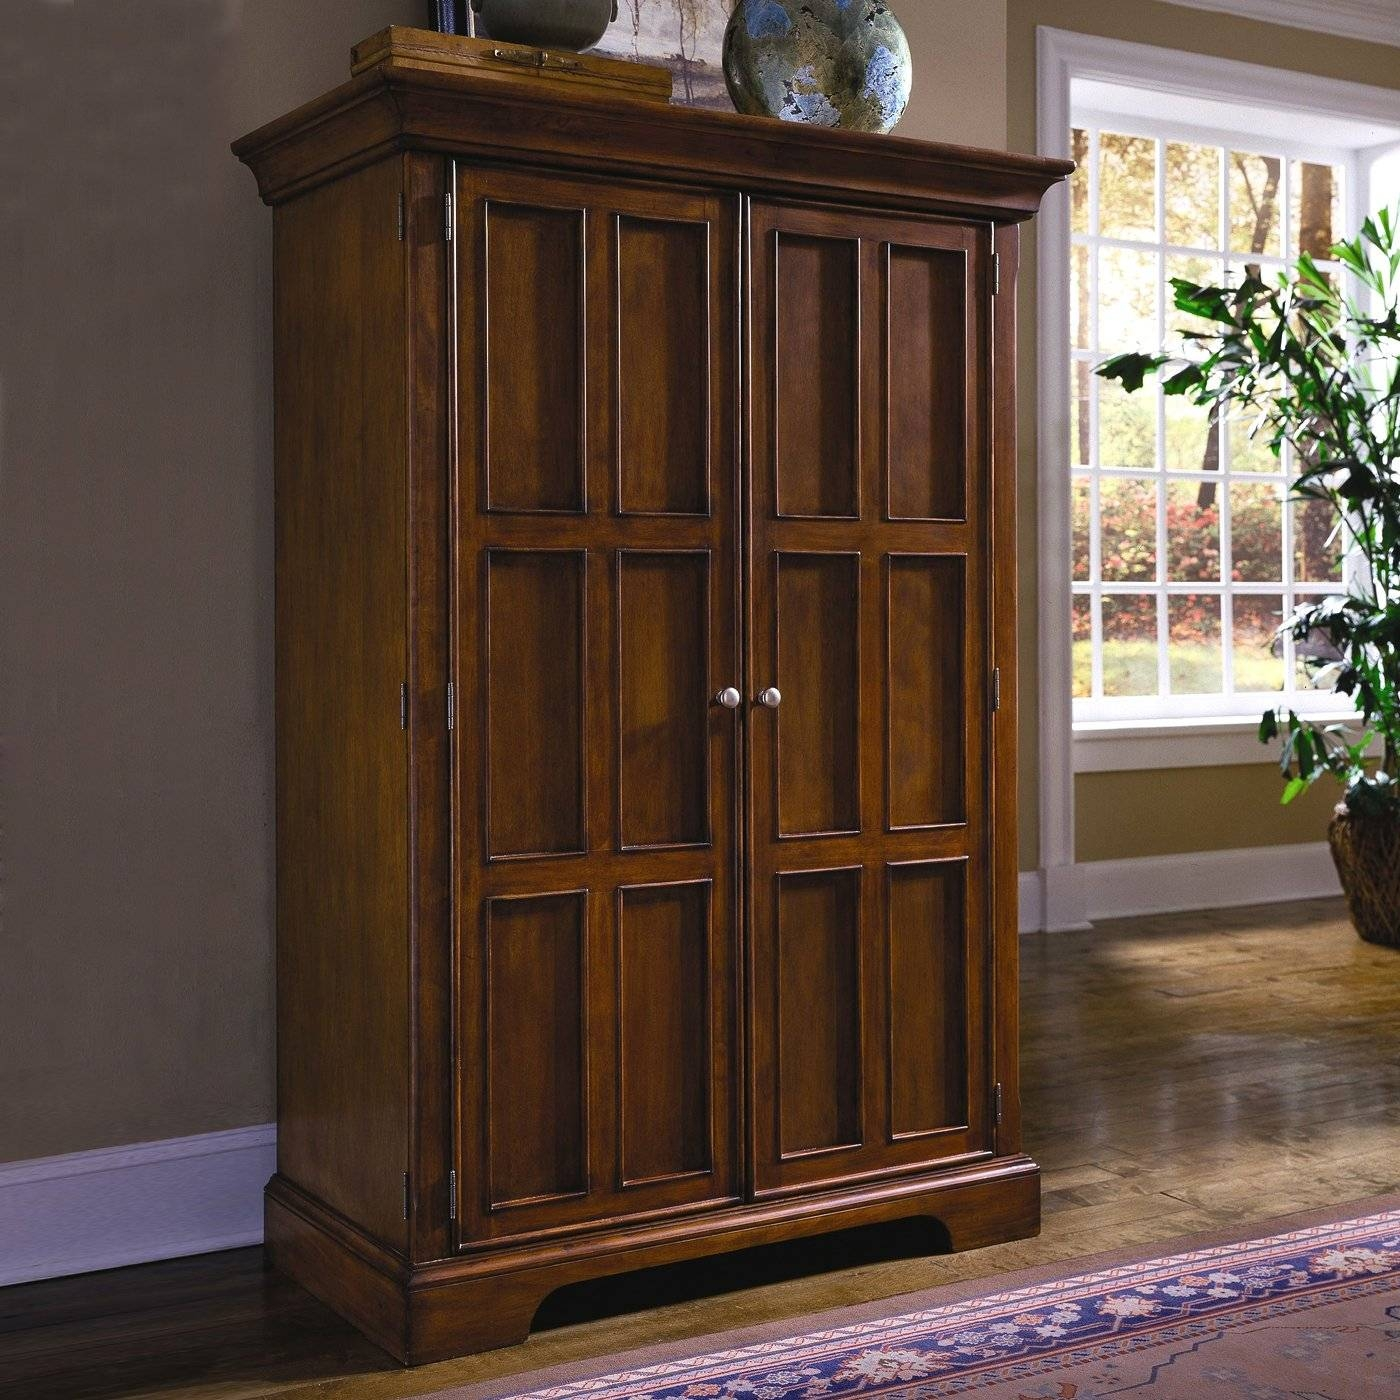 Furniture: Fancy Wardrobe Armoire For Wardrobe Organizer Idea regarding Dark Wood Wardrobe Closet (Image 16 of 30)